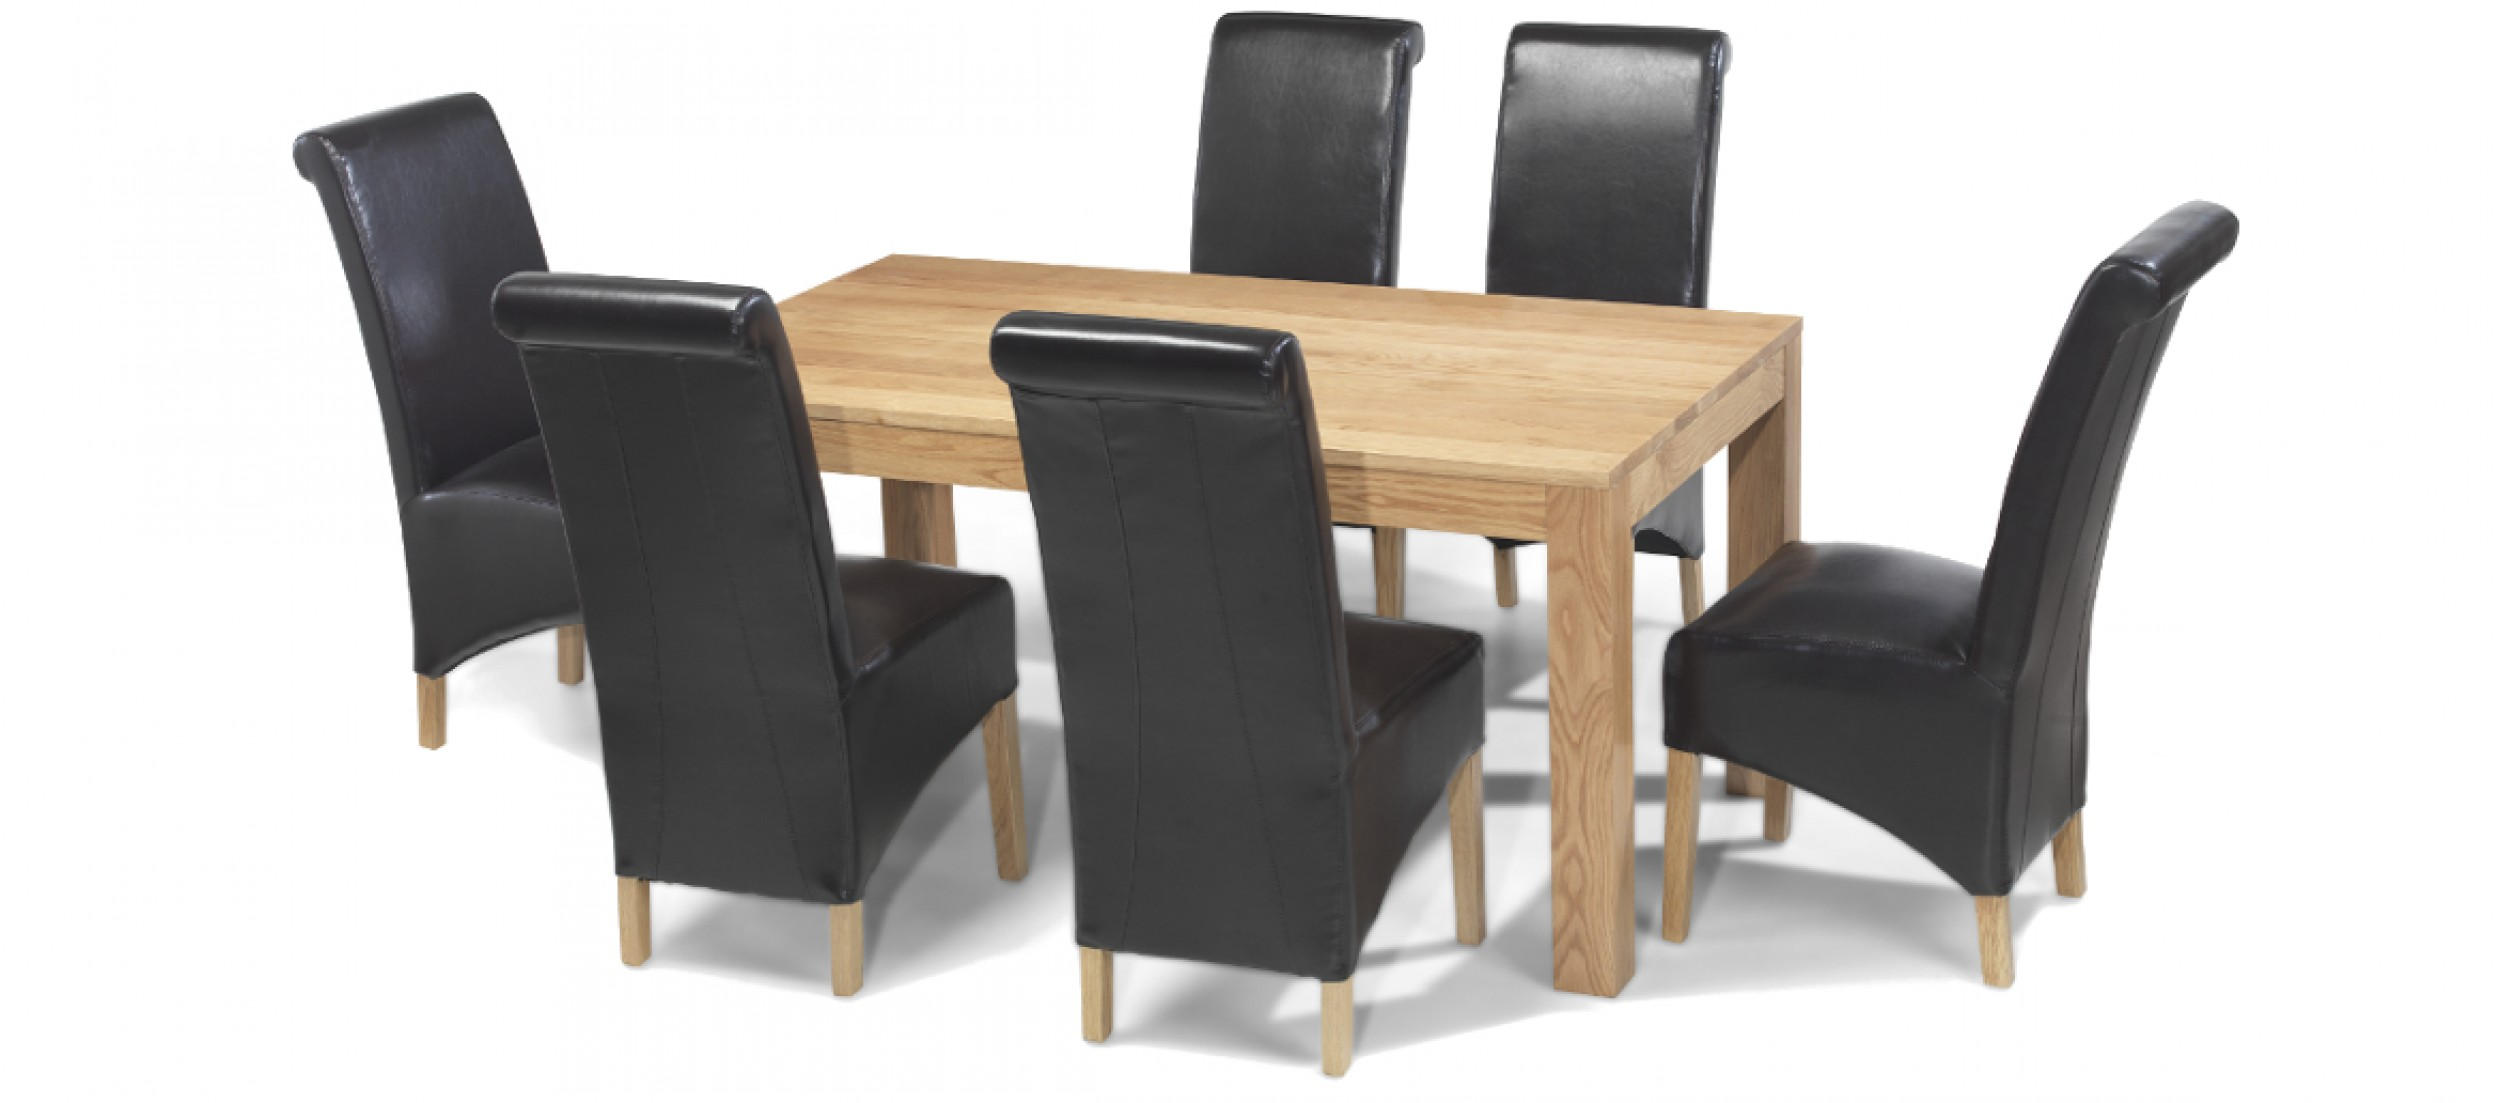 Cube oak 160 cm dining table and 6 chairs quercus living for Dining table with 6 chairs cheap